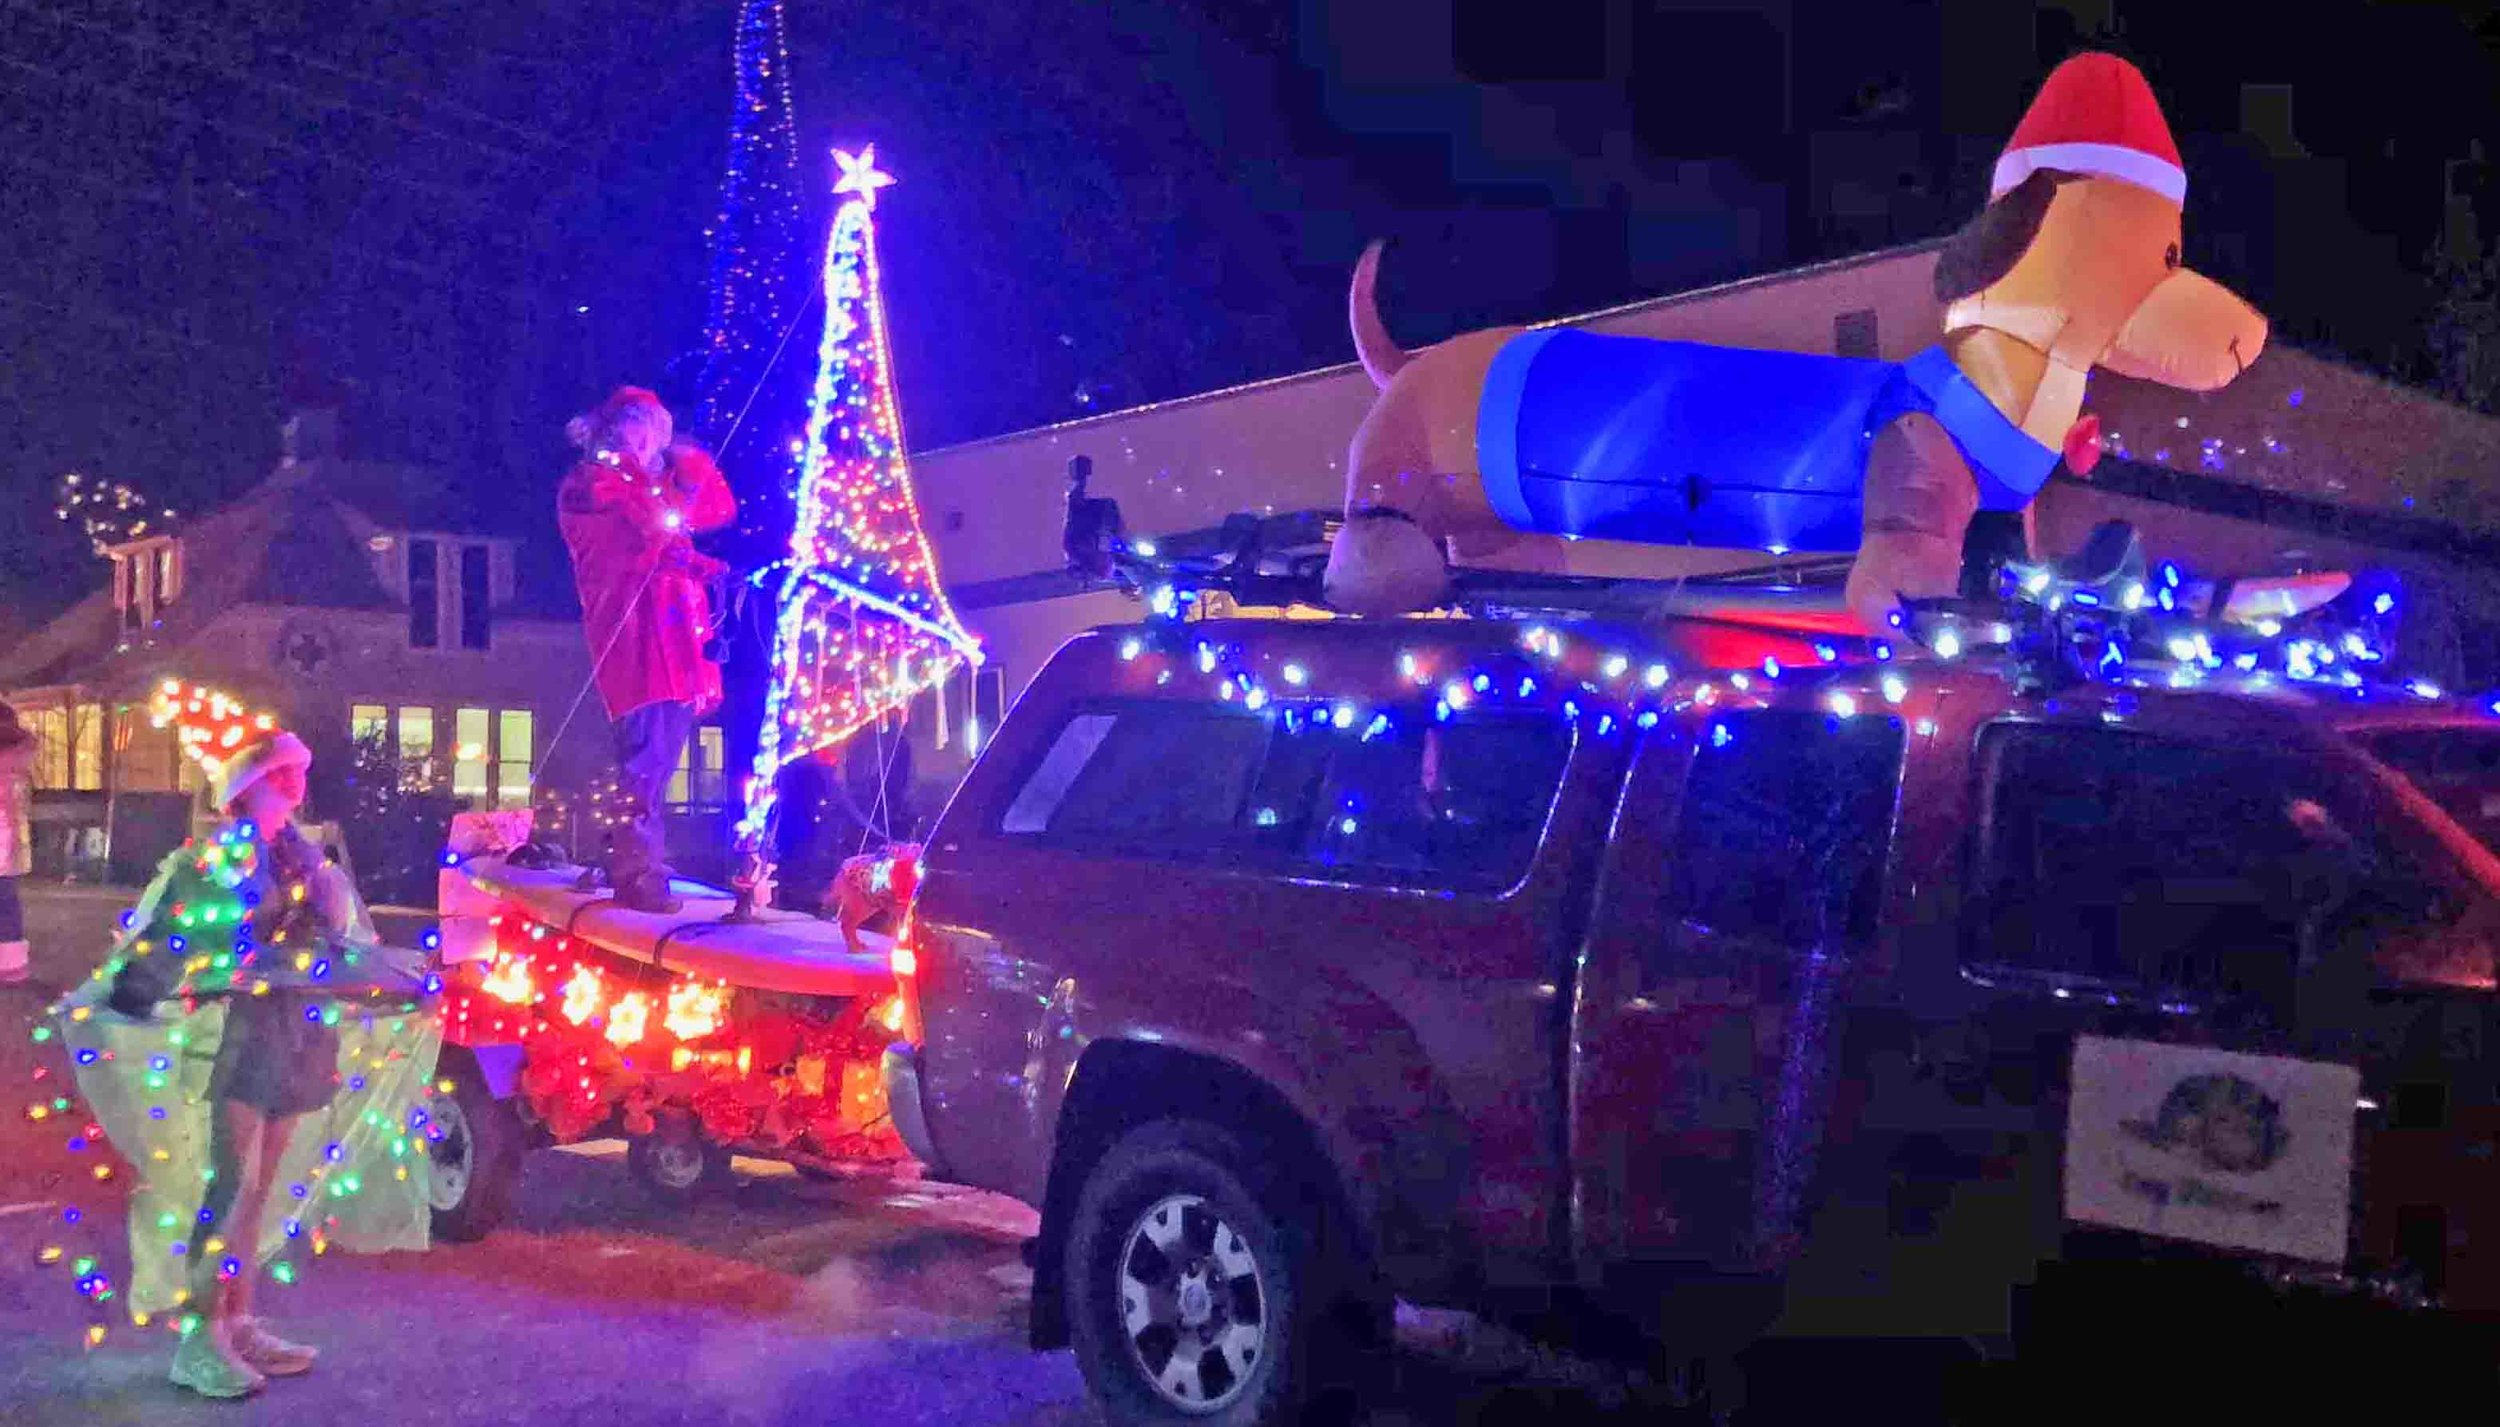 """Surf Dog Diaries in the Hood River Holiday parade. Left to right: Kelsey the Christmas tree girl, Barb and Doodle """"windsurf"""" the streets, Dasher, the 7-foot weiner dog on the roof of Red, the truck. Photo (c): Robb Severdia, DogDiary.org"""